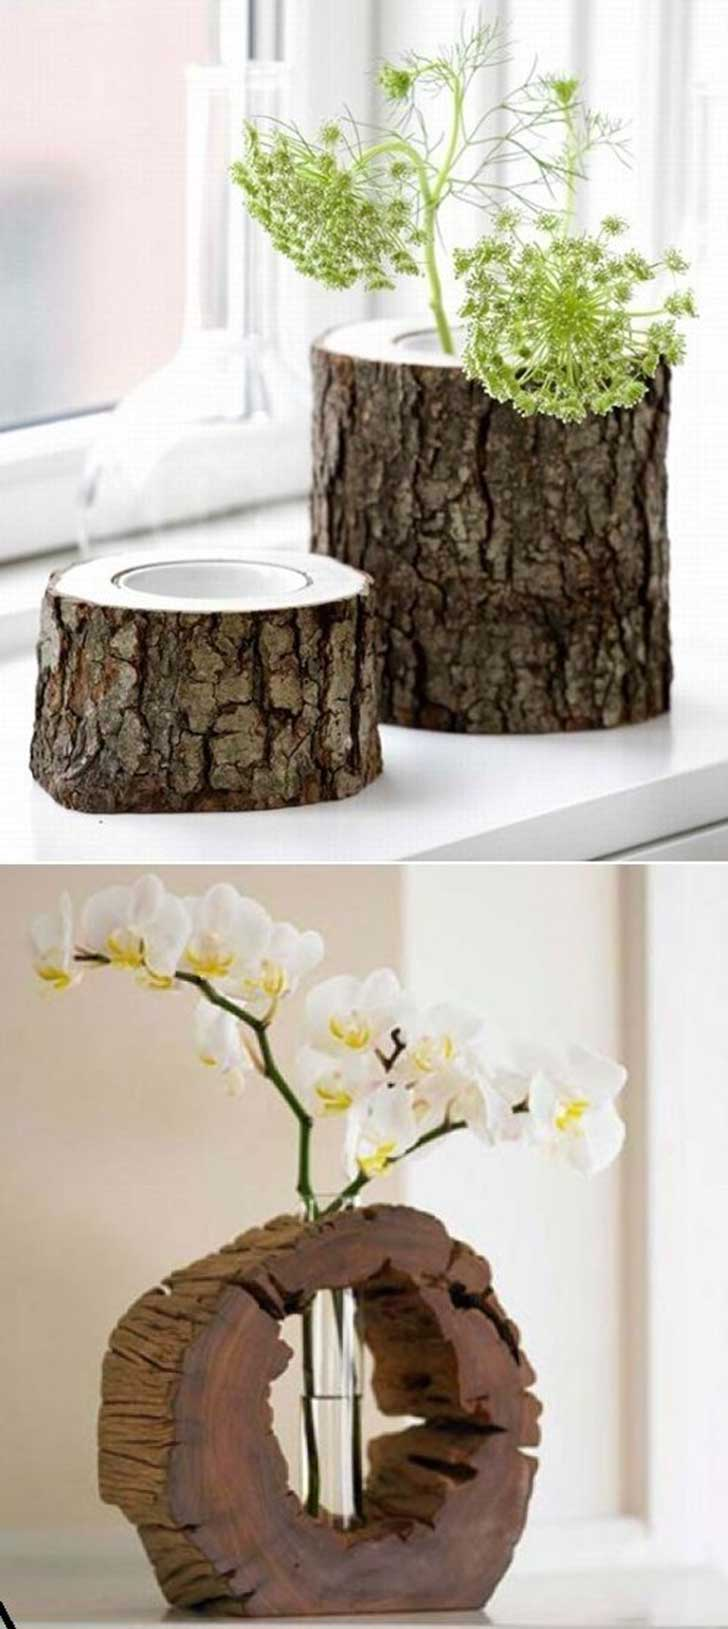 Exceptionally-Creative-DIY-Tree-Stumps-Projects-to-Complement-Your-Interior-With-Organicity-homesthetics-decor-5